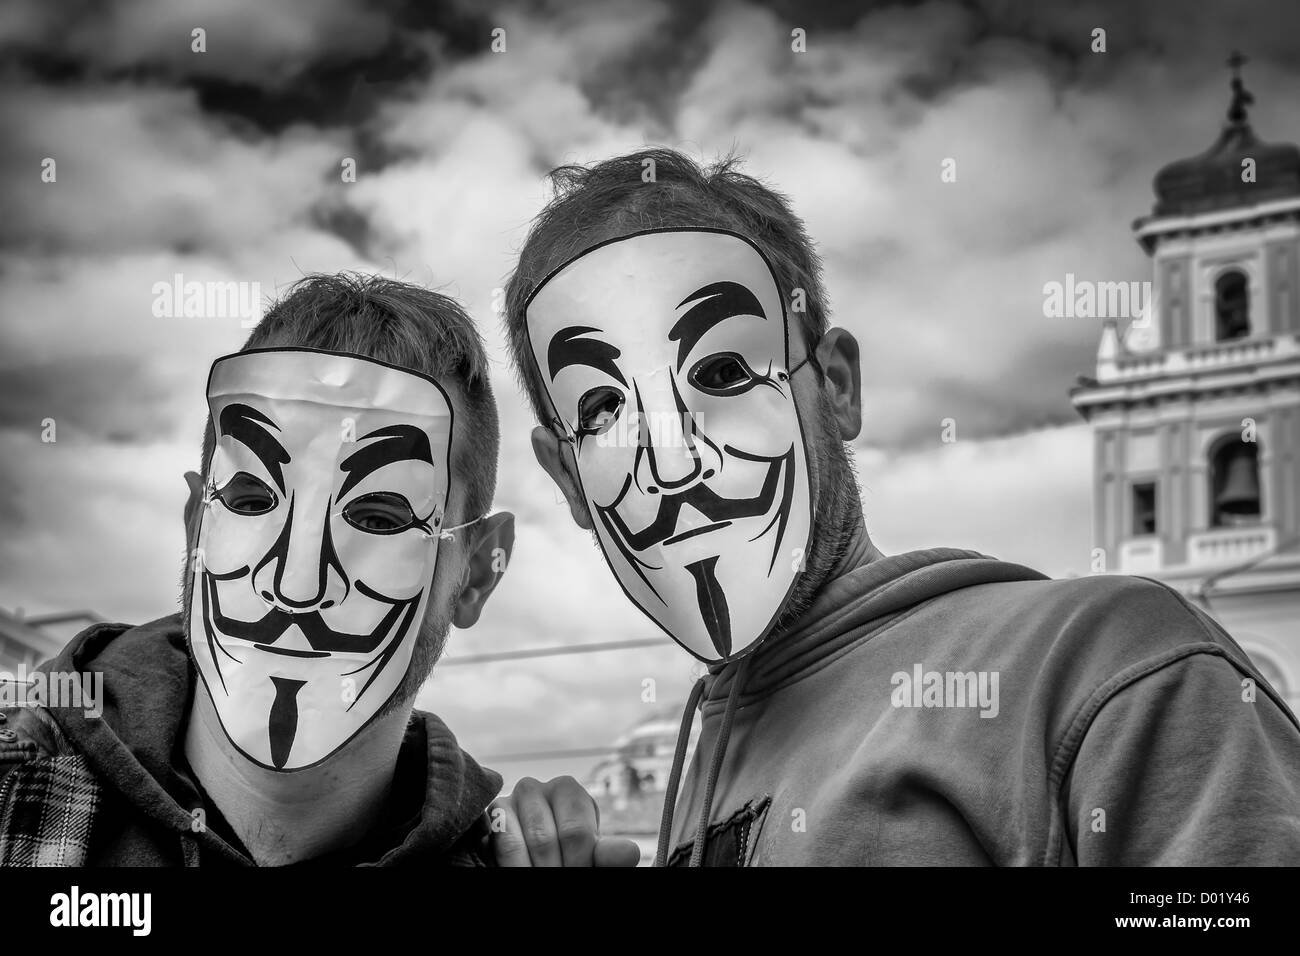 Italian demonstrates wear Guy Fawkes during a demonstration against austerity masseurs in Parma, Italy - Stock Image